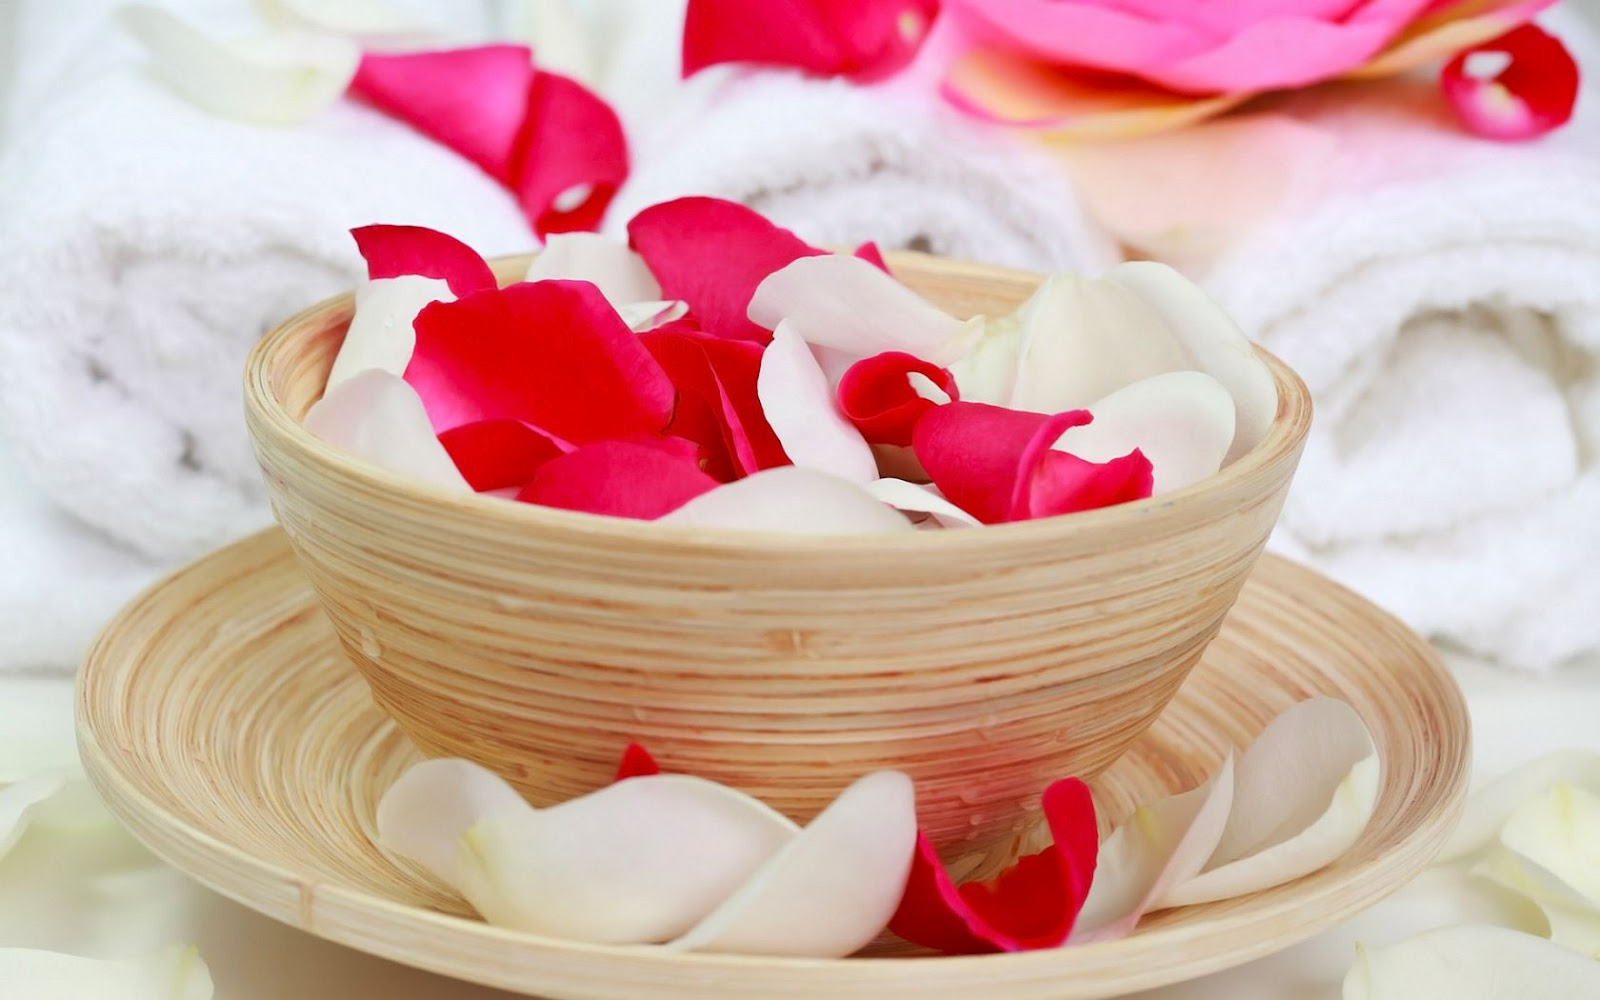 http://3.bp.blogspot.com/-h6oh_RUQk_Q/T1kPWBAg7nI/AAAAAAAAA2I/4Xq9Q2uDtvM/s1600/Red_White_Rose_Petals_in_Wooden_Bowl_Spa_Center_HD_Wallpaper.jpg